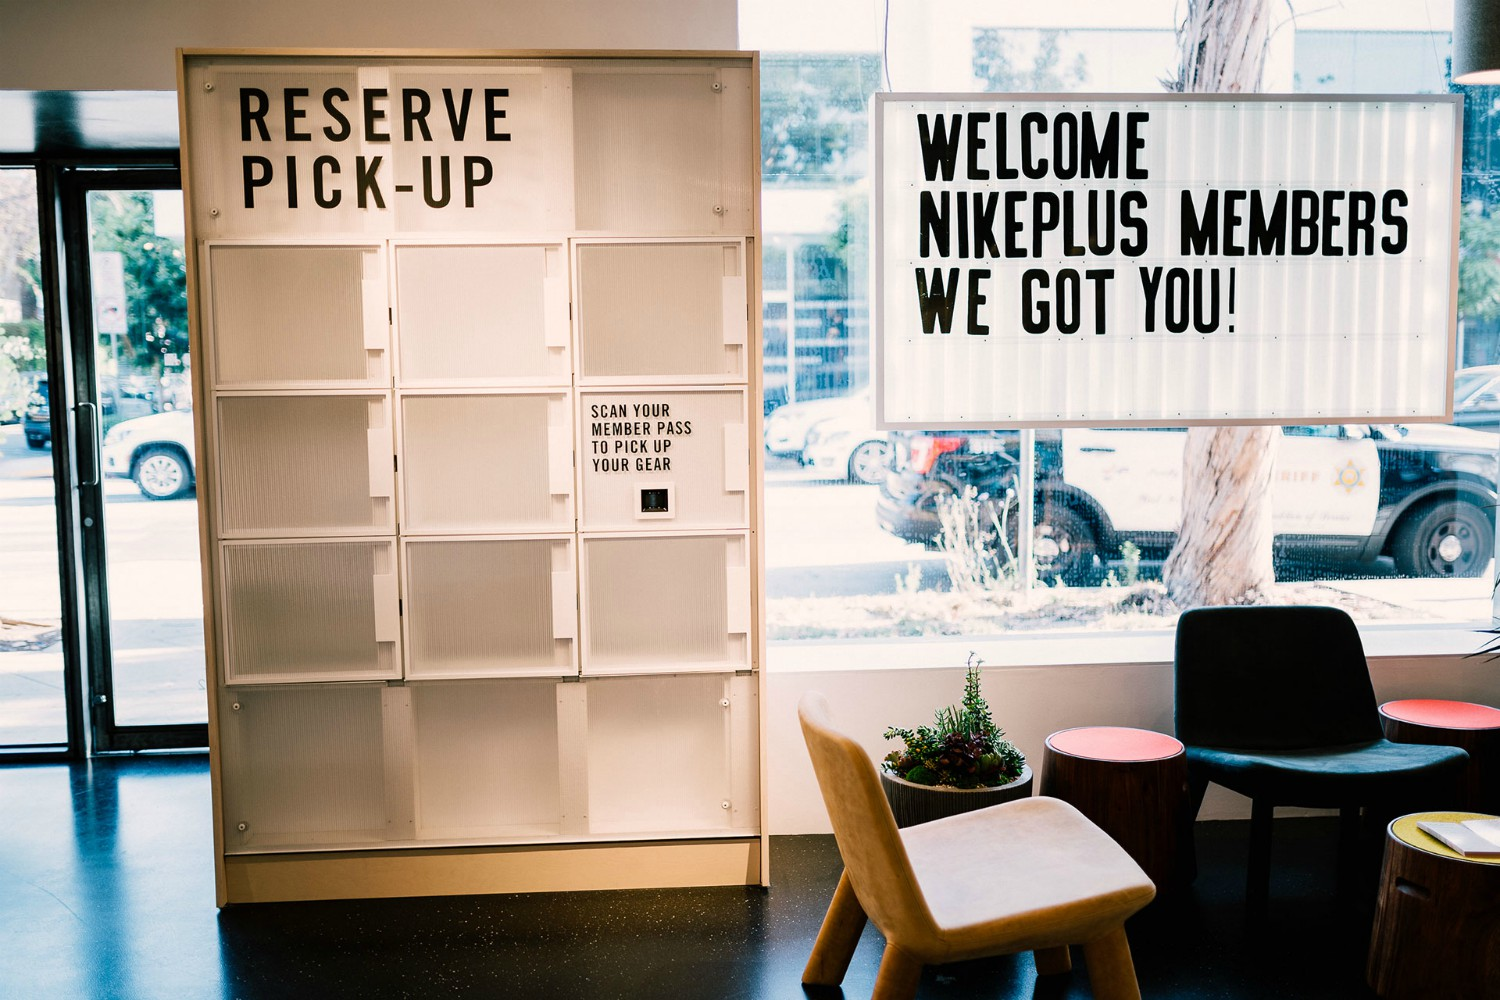 Nike by Melrose gives NikePlus Members access to shop from the Nike App, tap reserve and pick up their product to try-on and purchase in-store.